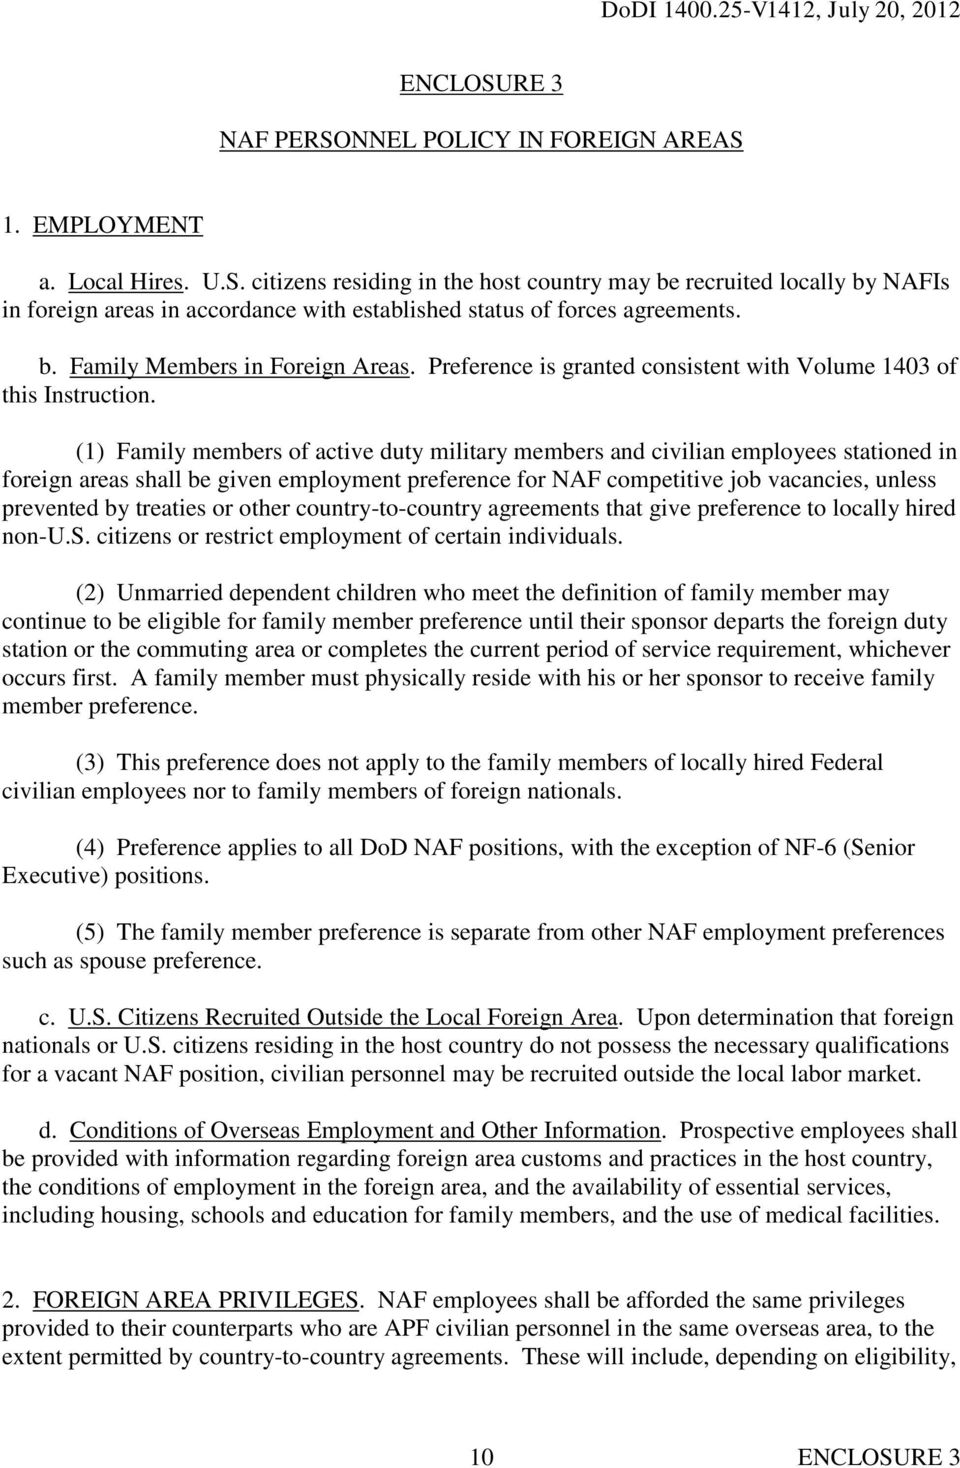 (1) Family members of active duty military members and civilian employees stationed in foreign areas shall be given employment preference for NAF competitive job vacancies, unless prevented by